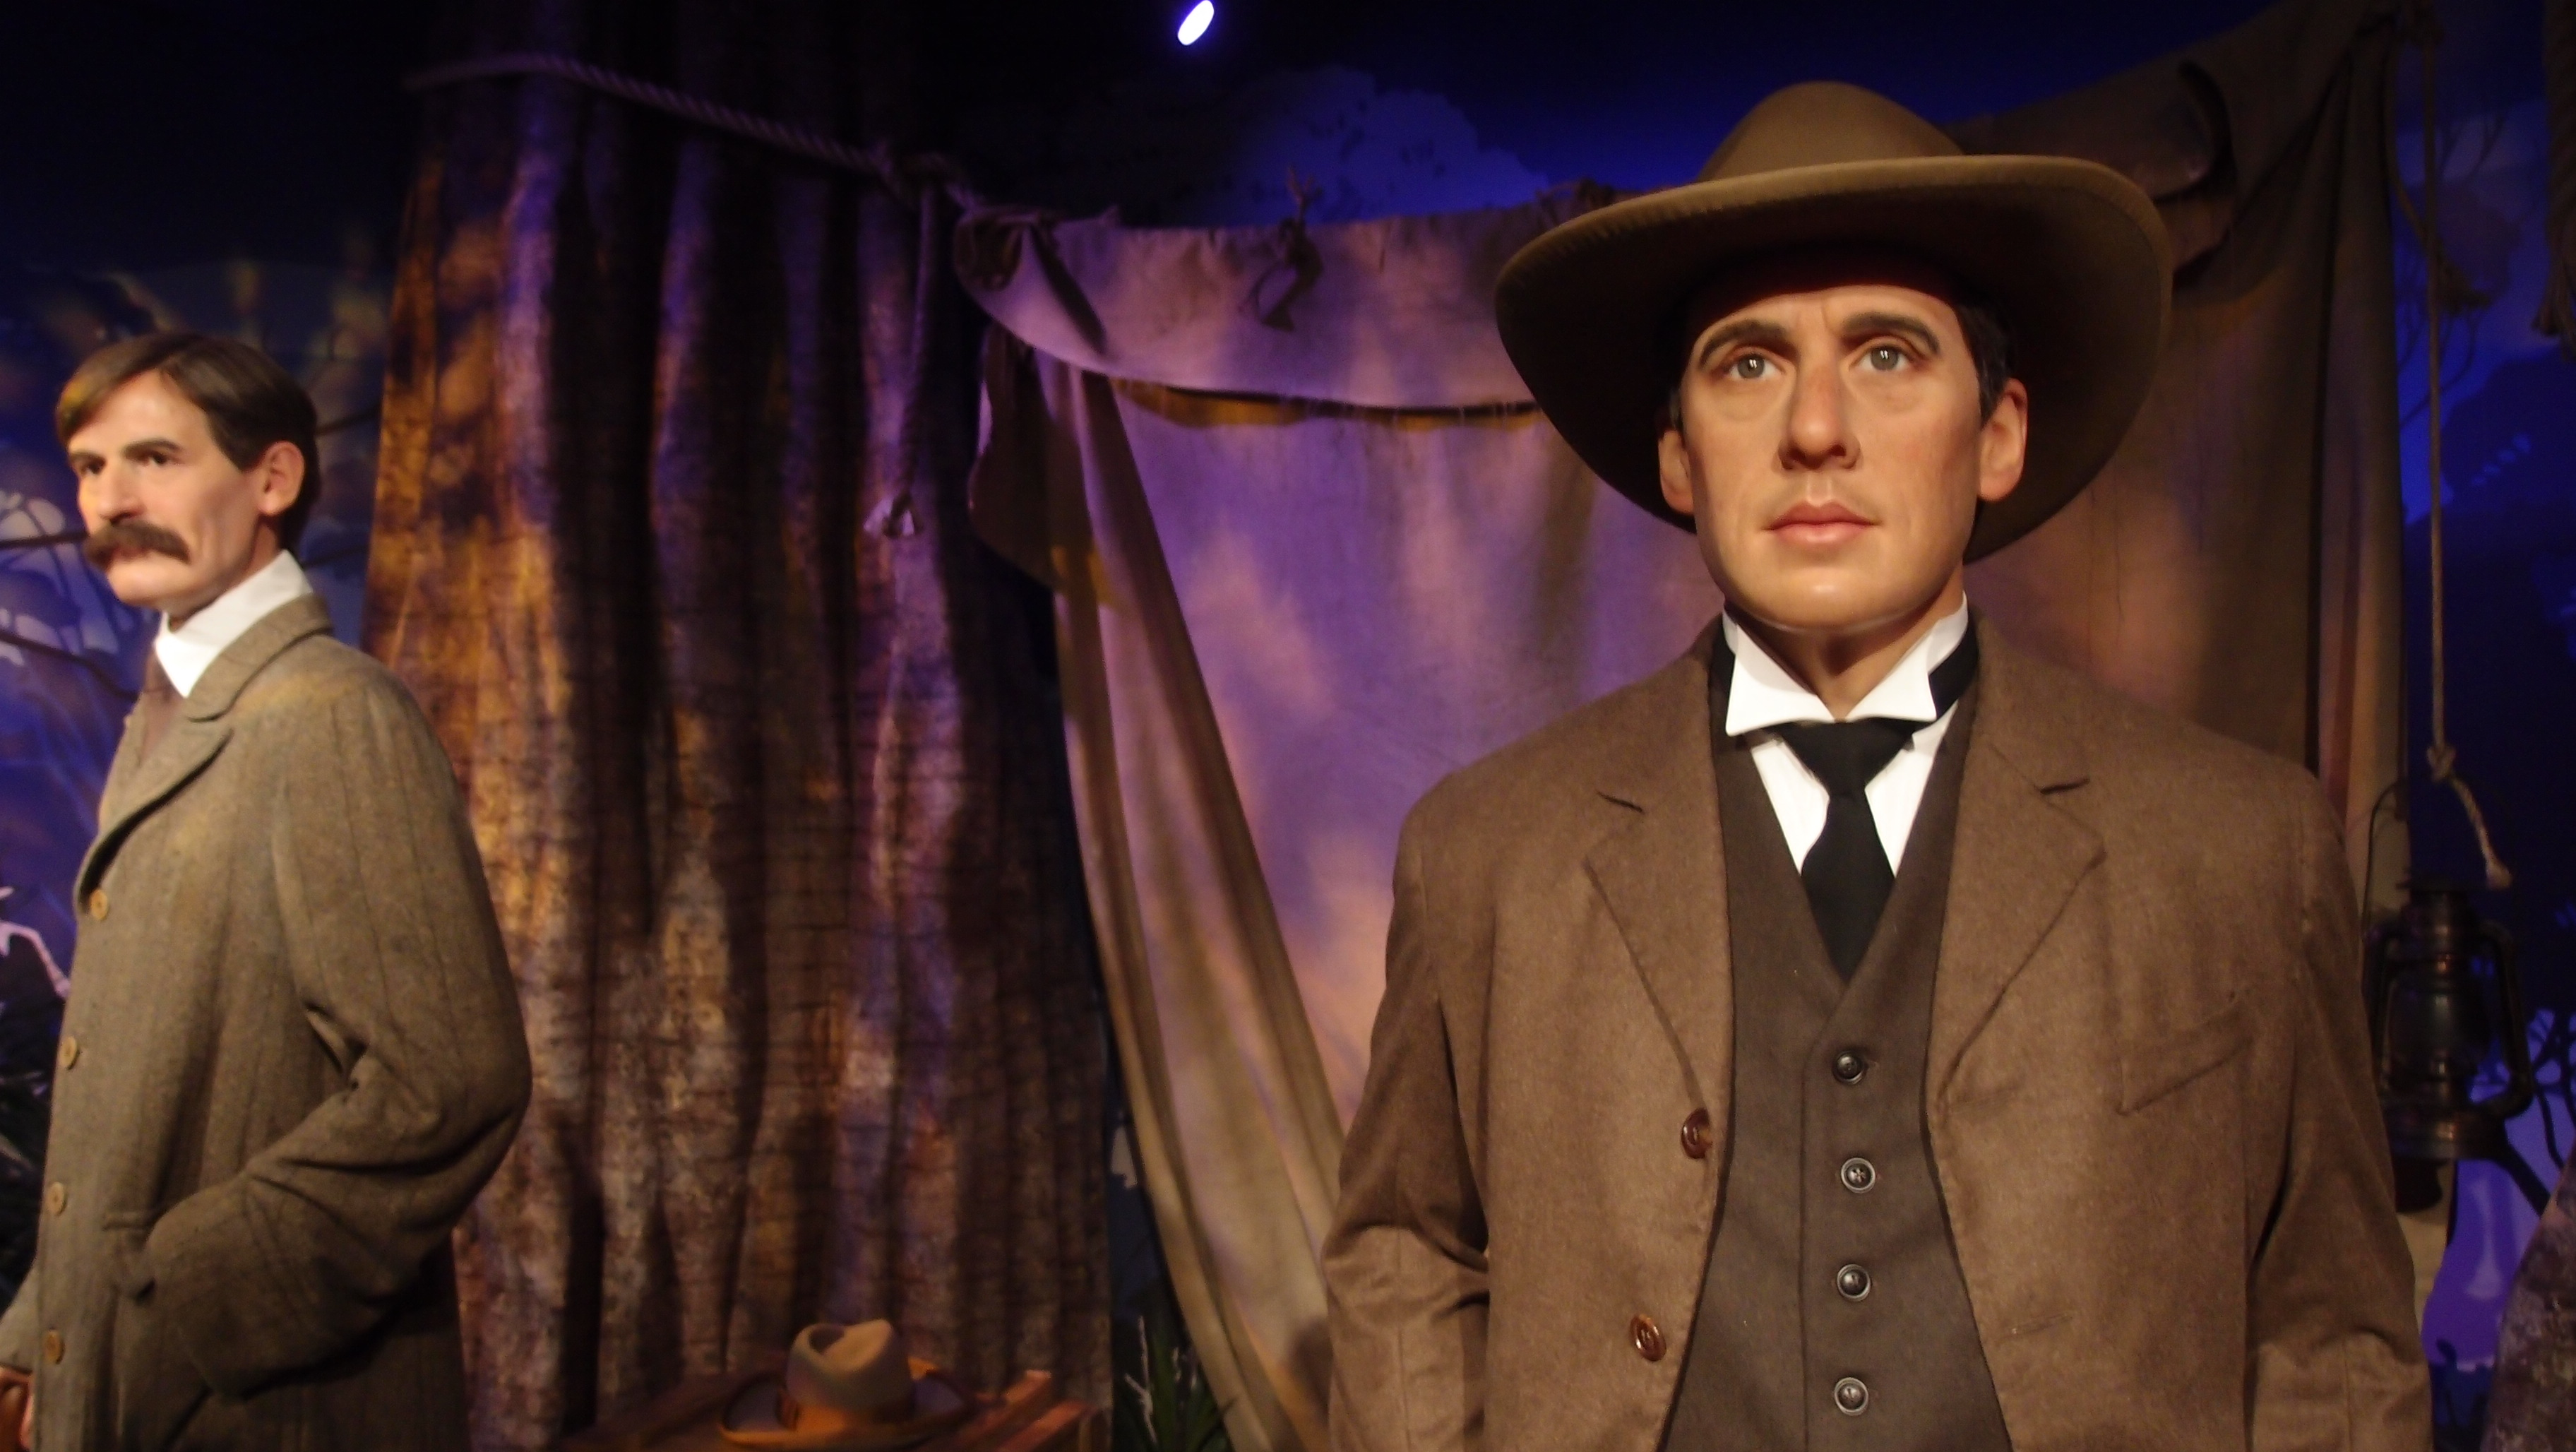 jason mccall the modern day banjo patterson and henry lawson Jason mccall: the modern day banjo patterson and henry lawson 1,192 words 3 pages an analysis of the right choices in drover's wife by henry lawson 334 words 1 page.